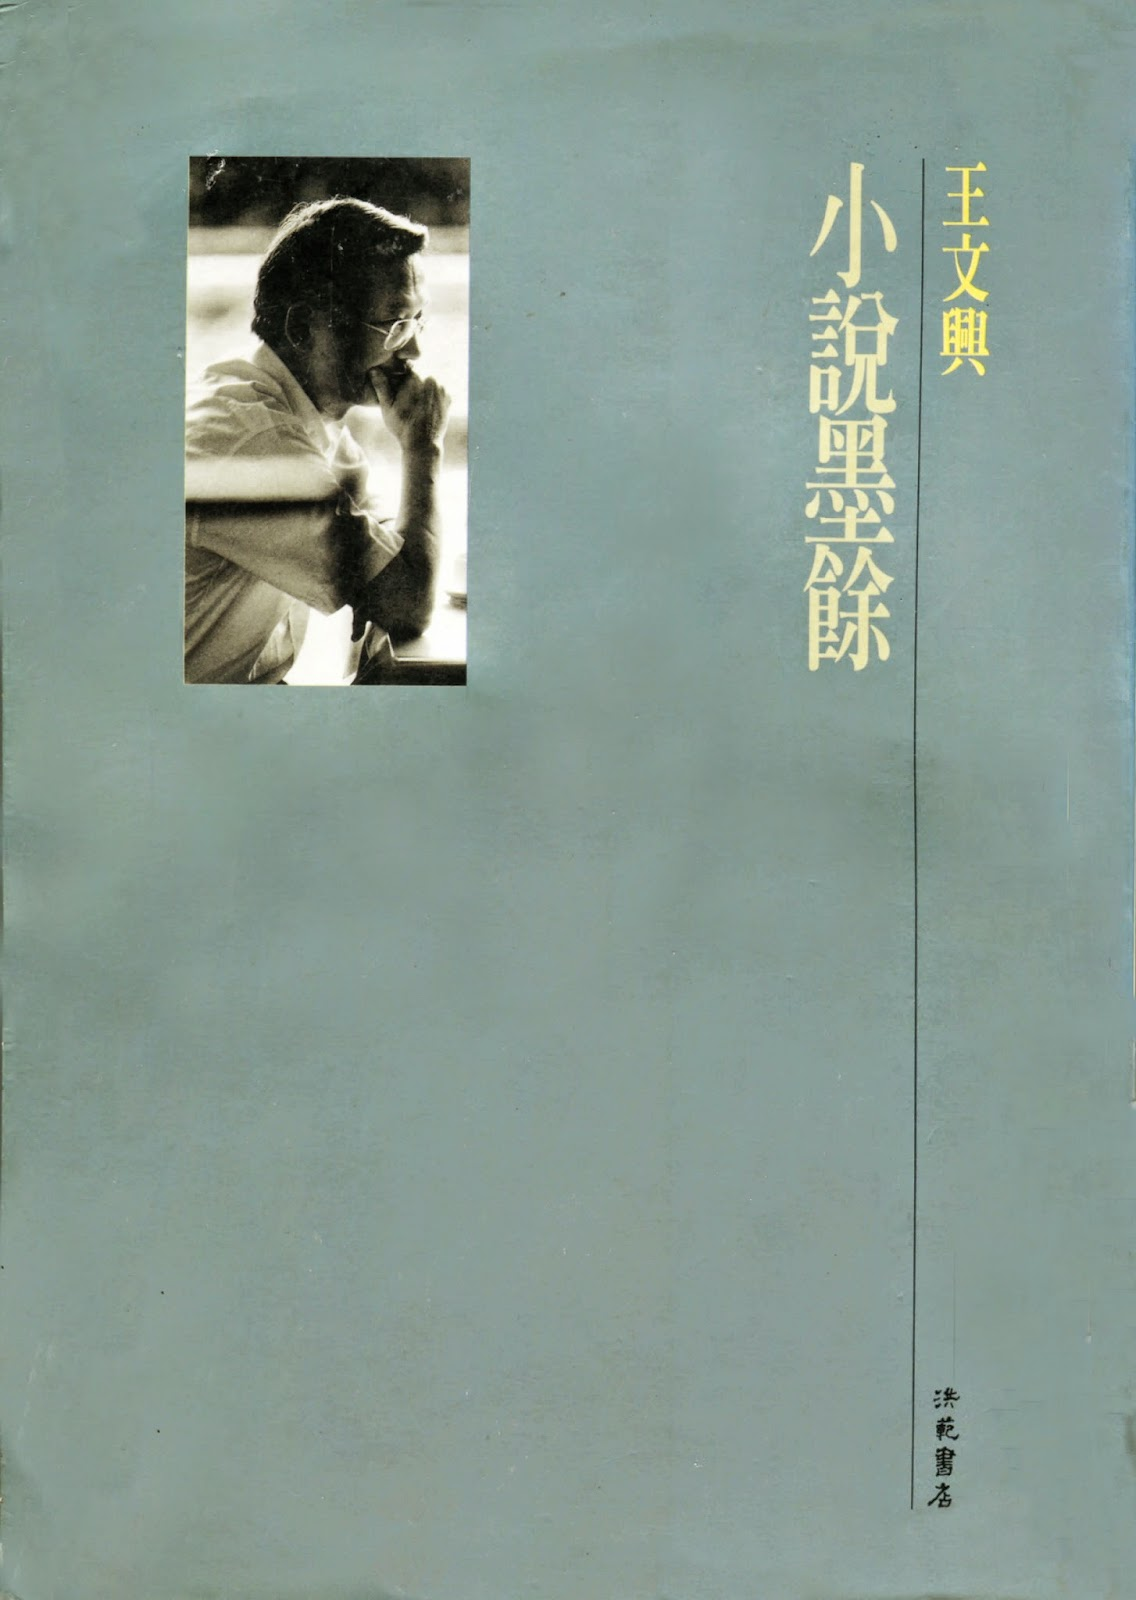 Beyond Fiction 《小說墨餘》(2002)